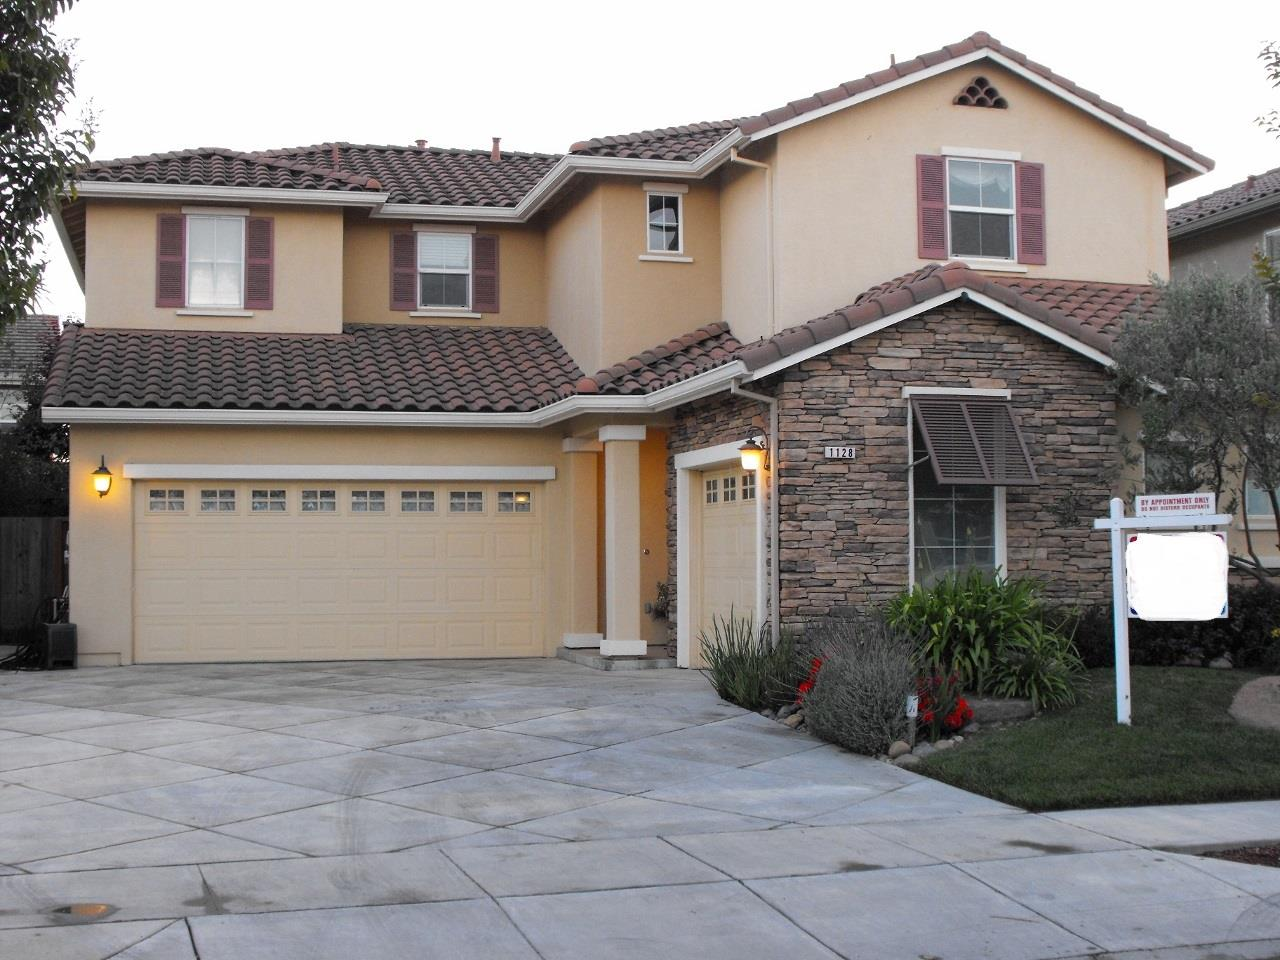 1128 Genoa Way, SALINAS, CA 93905